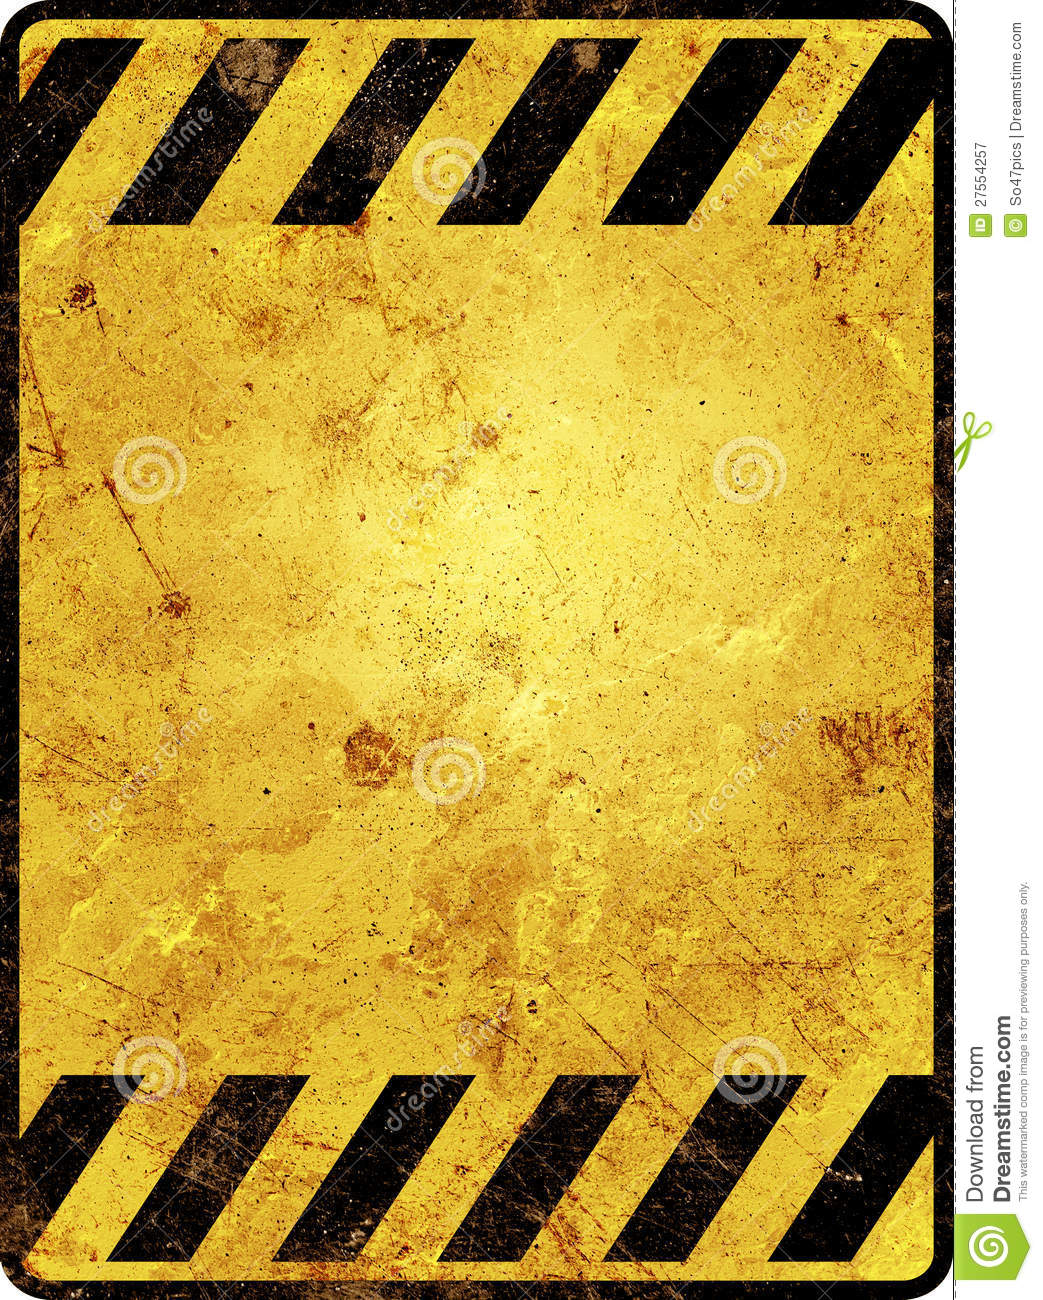 Danger 3d Wallpaper Rusty Warning Sign Template Royalty Free Stock Photography